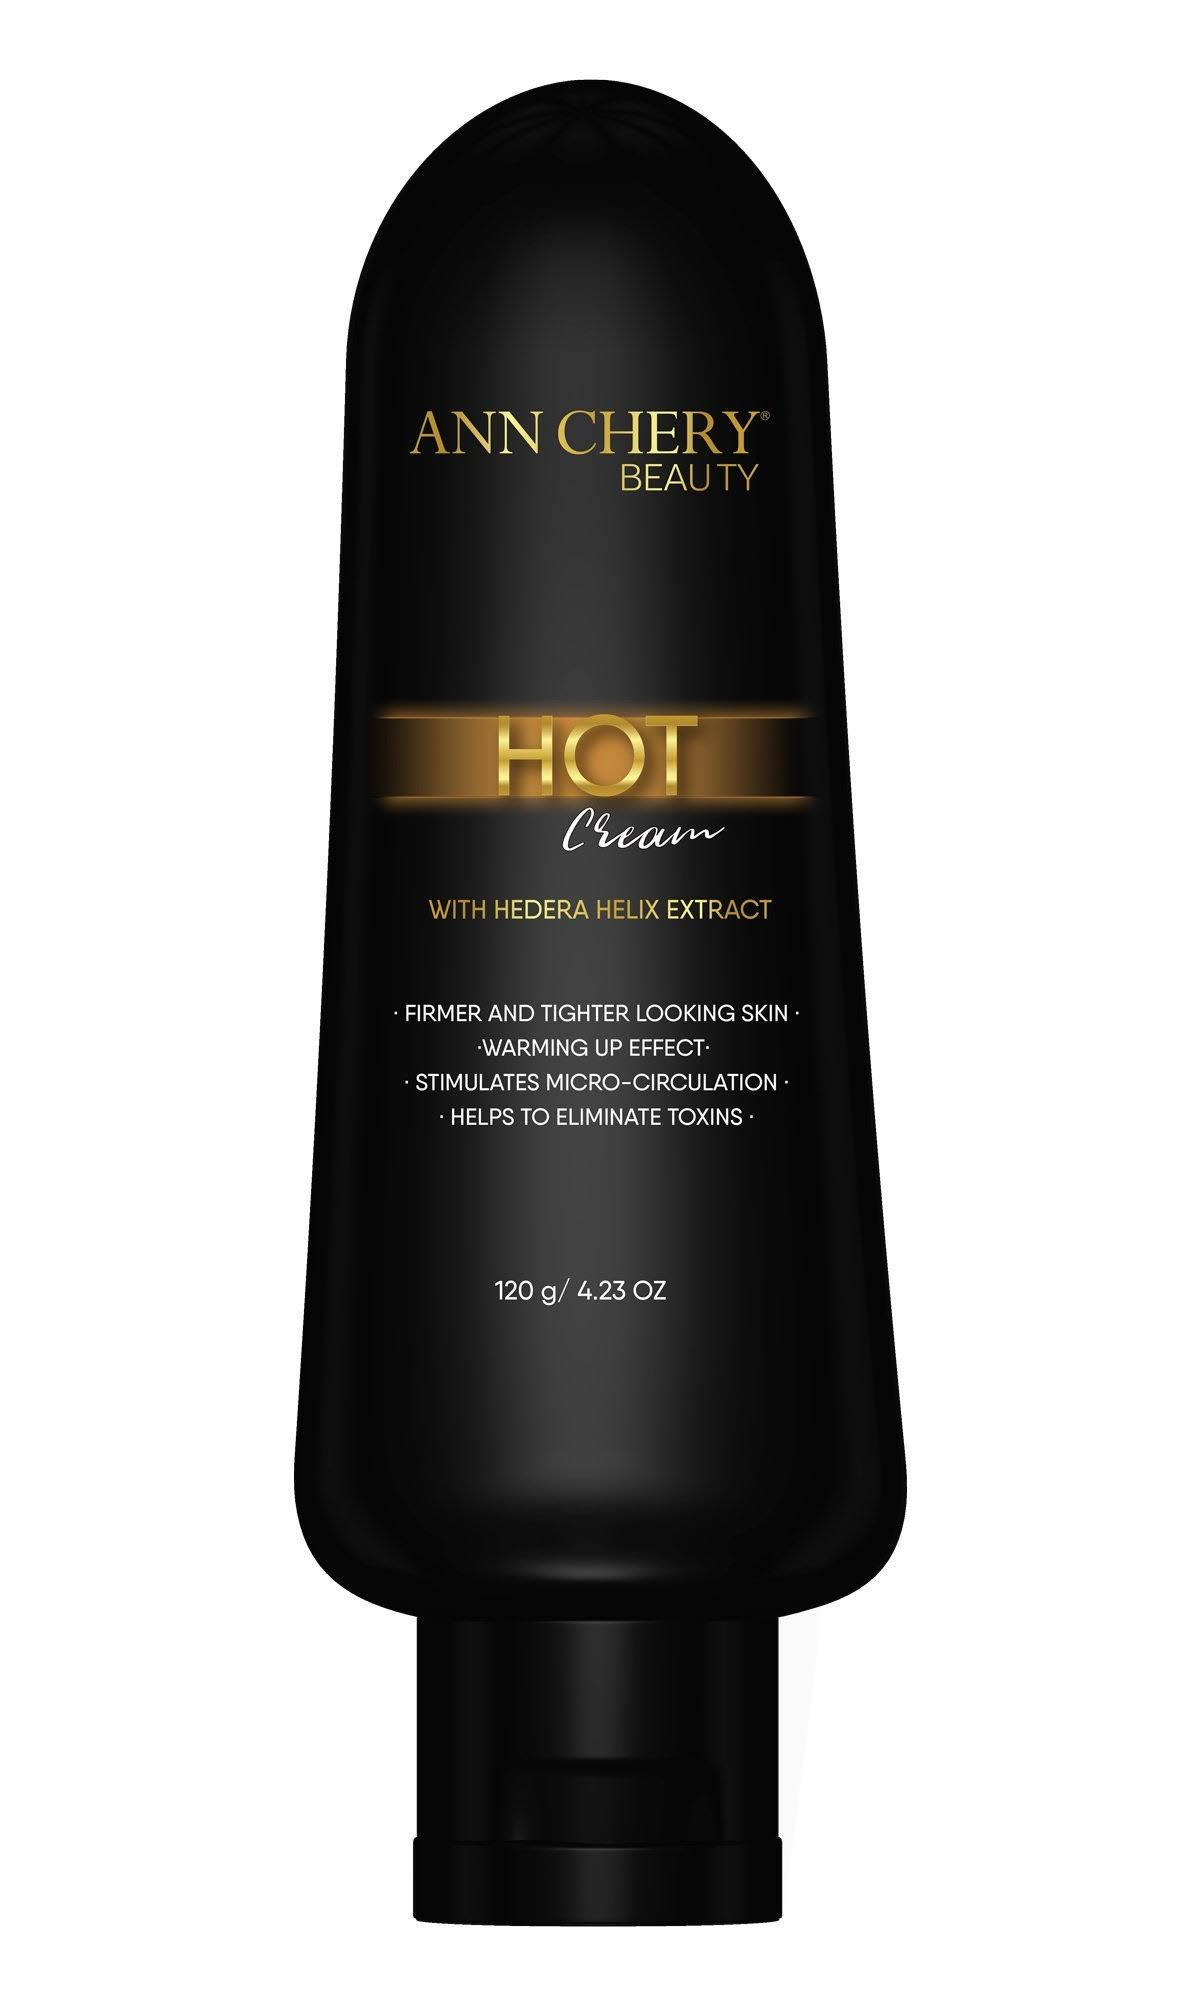 Ann Cherry Hot Bodycream - 120g